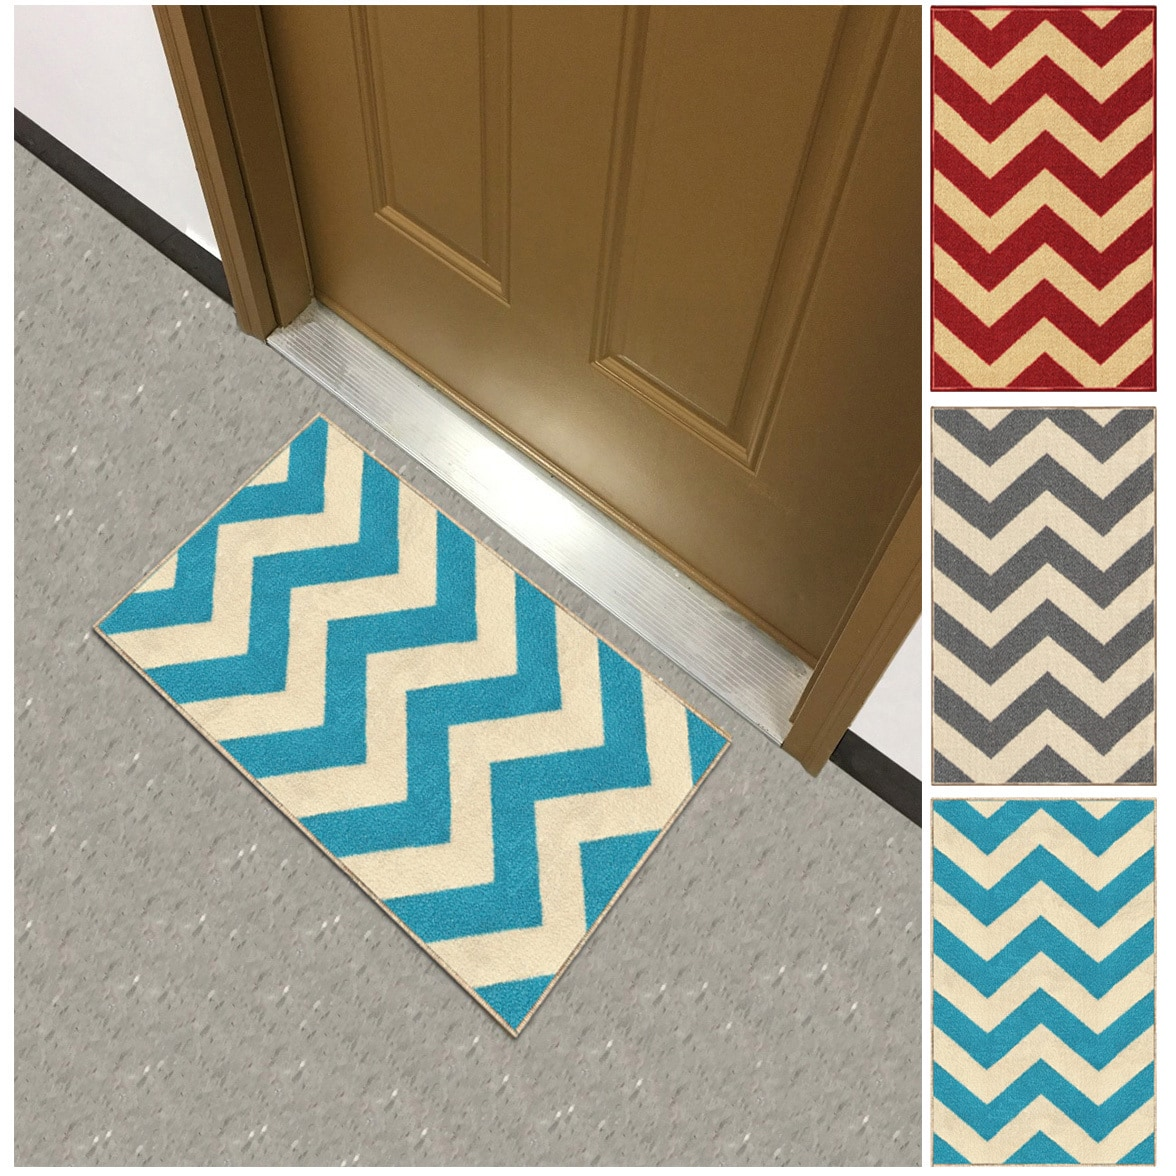 Kapaqua Chevron Zig Zag Non-slip Rubber Backed Doormat Accent Rug (1'6 x 2'7) by Overstock